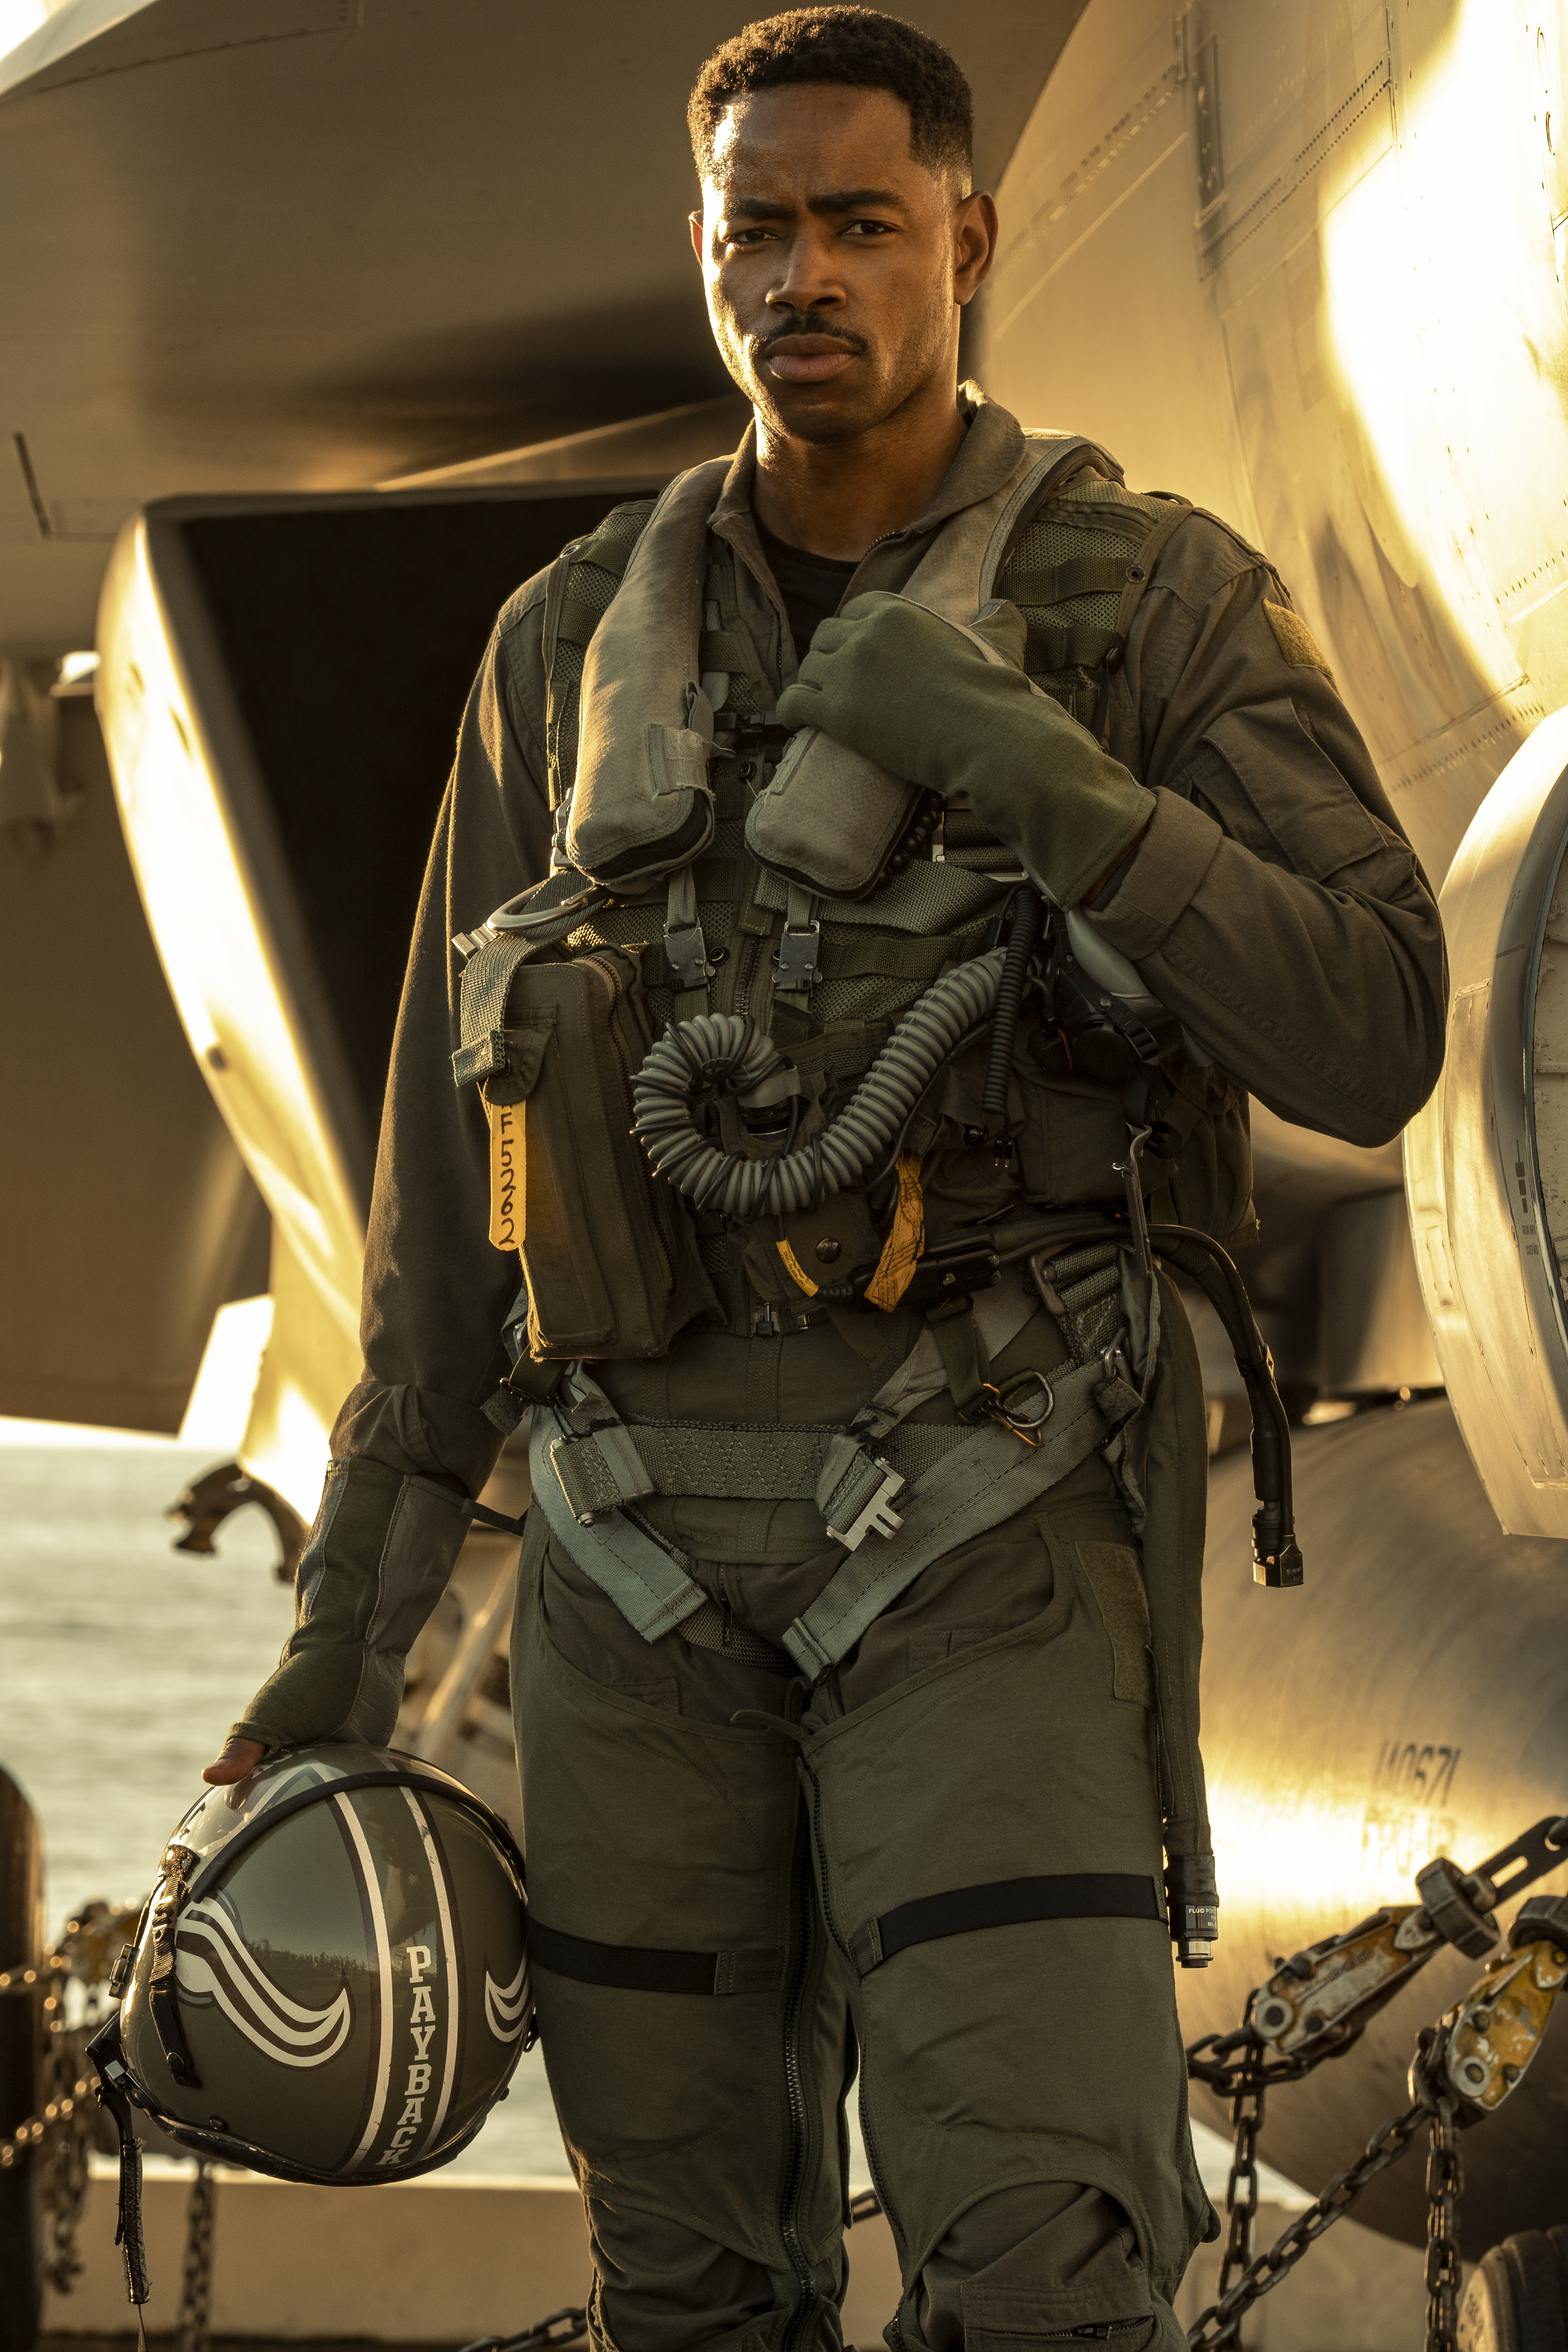 """Jay Ellis plays """"Payback"""" in Top Gun: Maverick from Paramount Pictures, Skydance and Jerry Bruckheimer Films."""